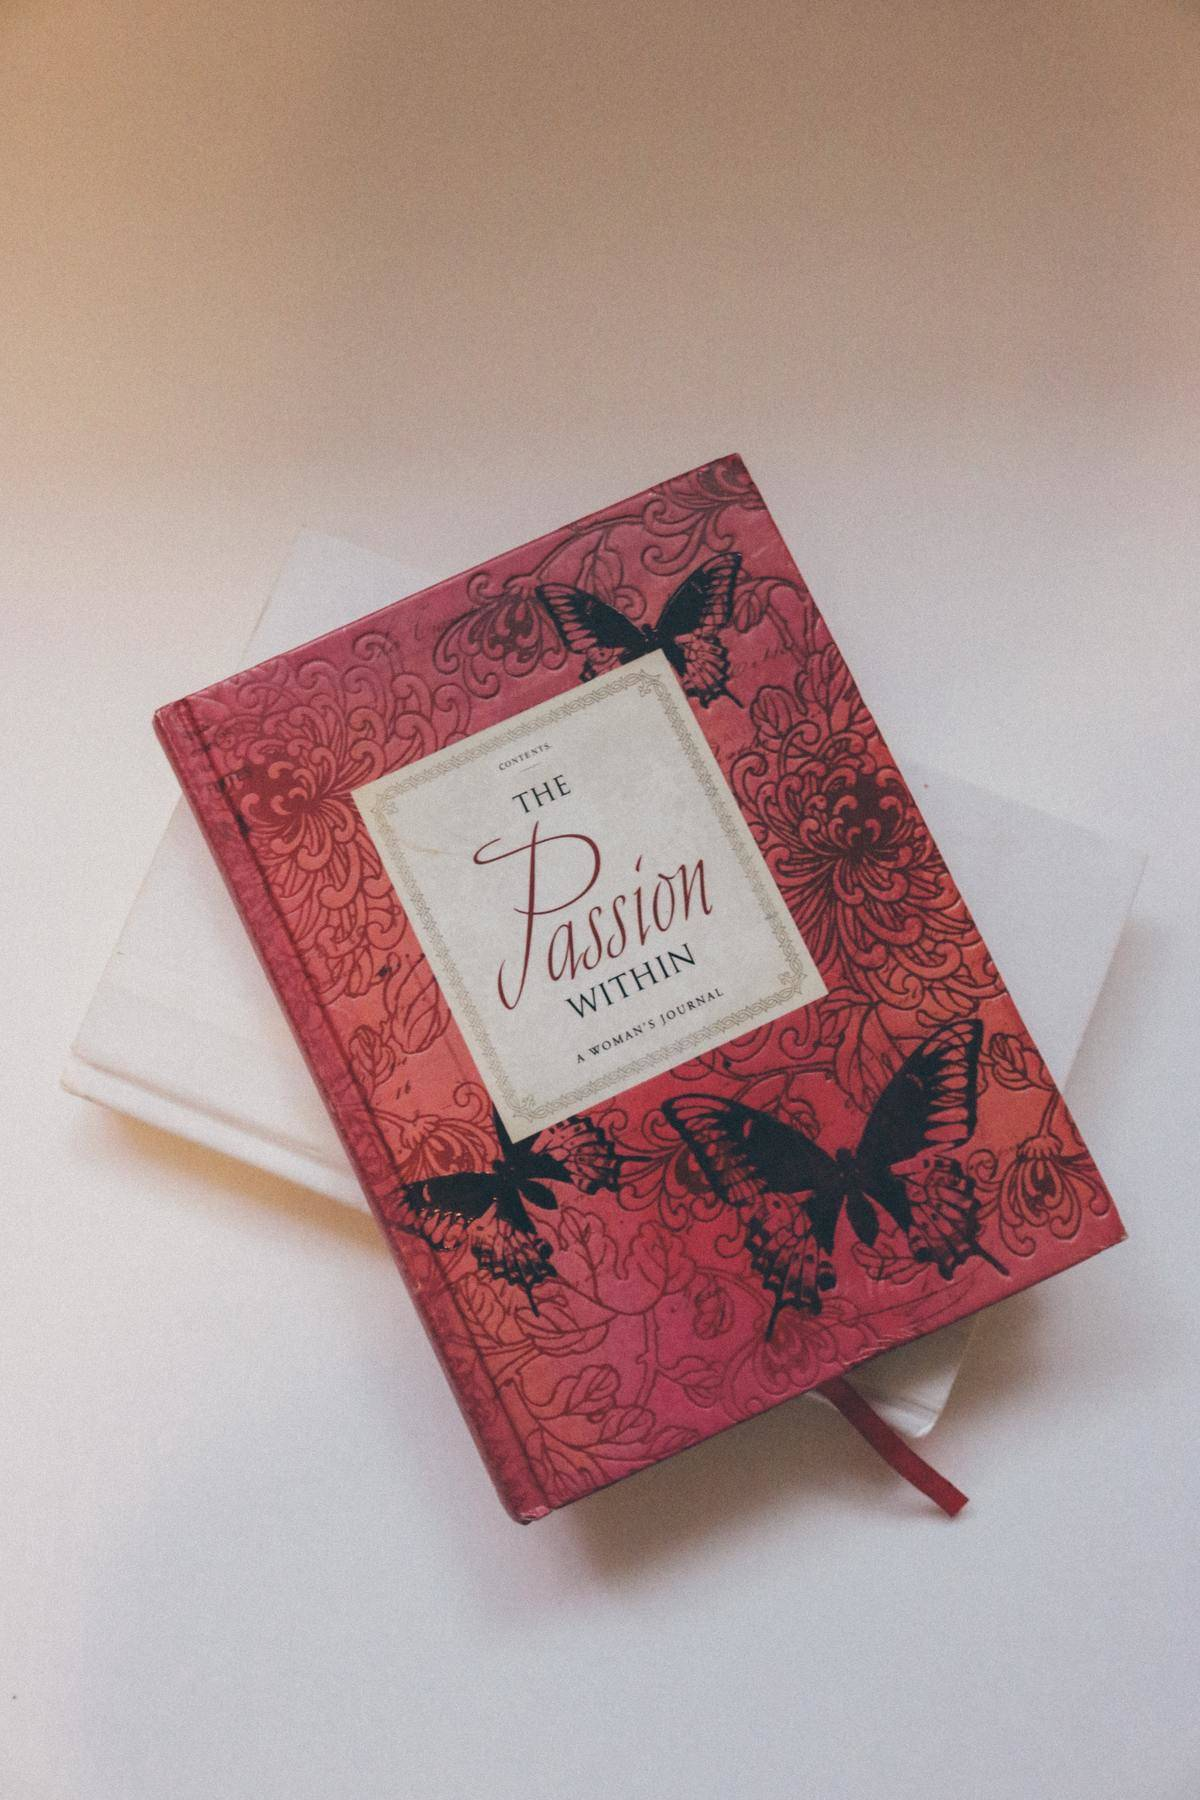 Red journal with black butterflies titled